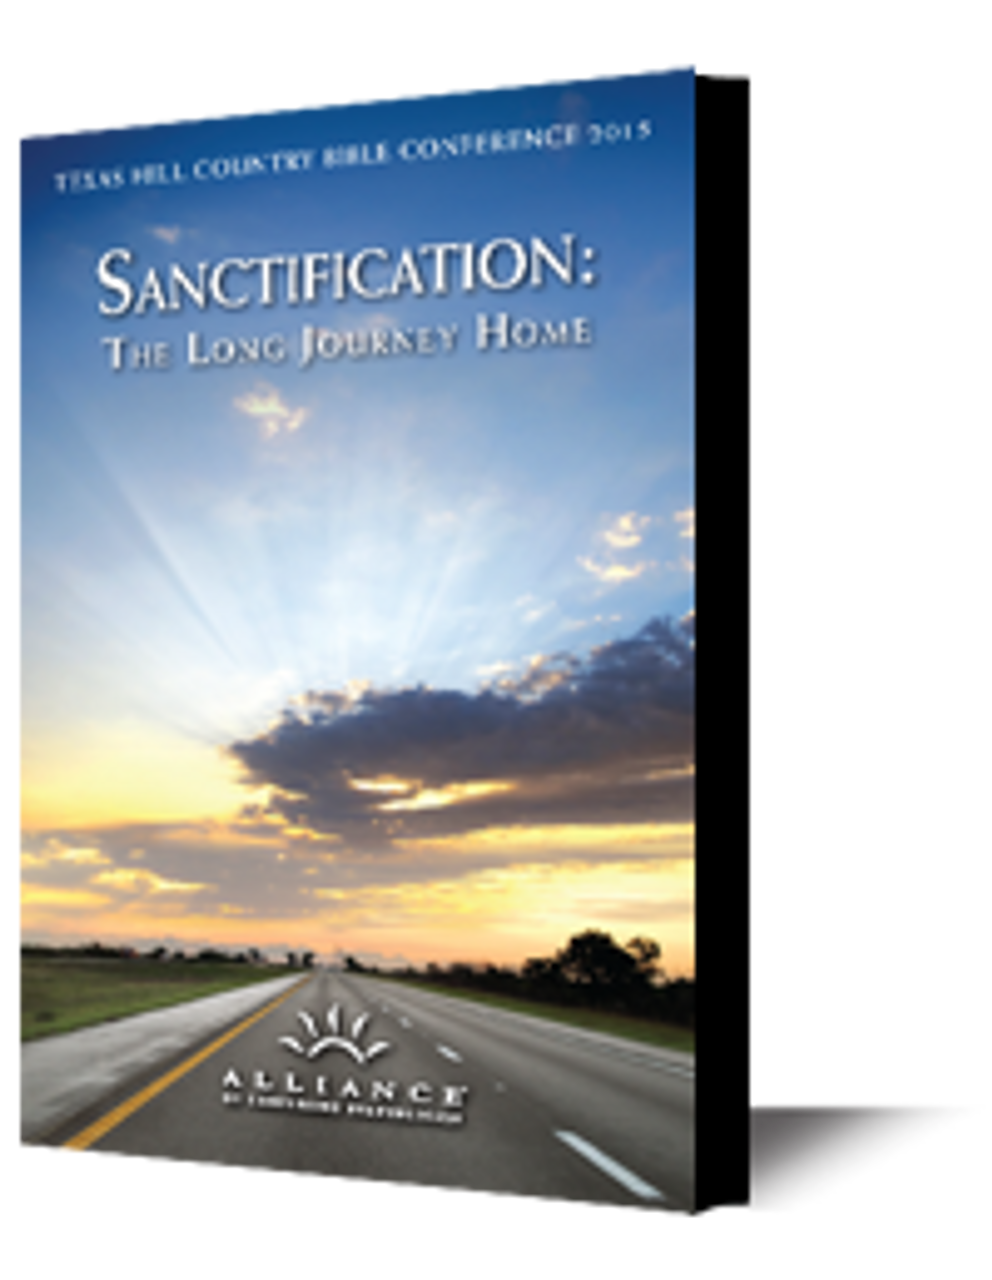 The Starting Point: Definitive Sanctification (mp3 download)